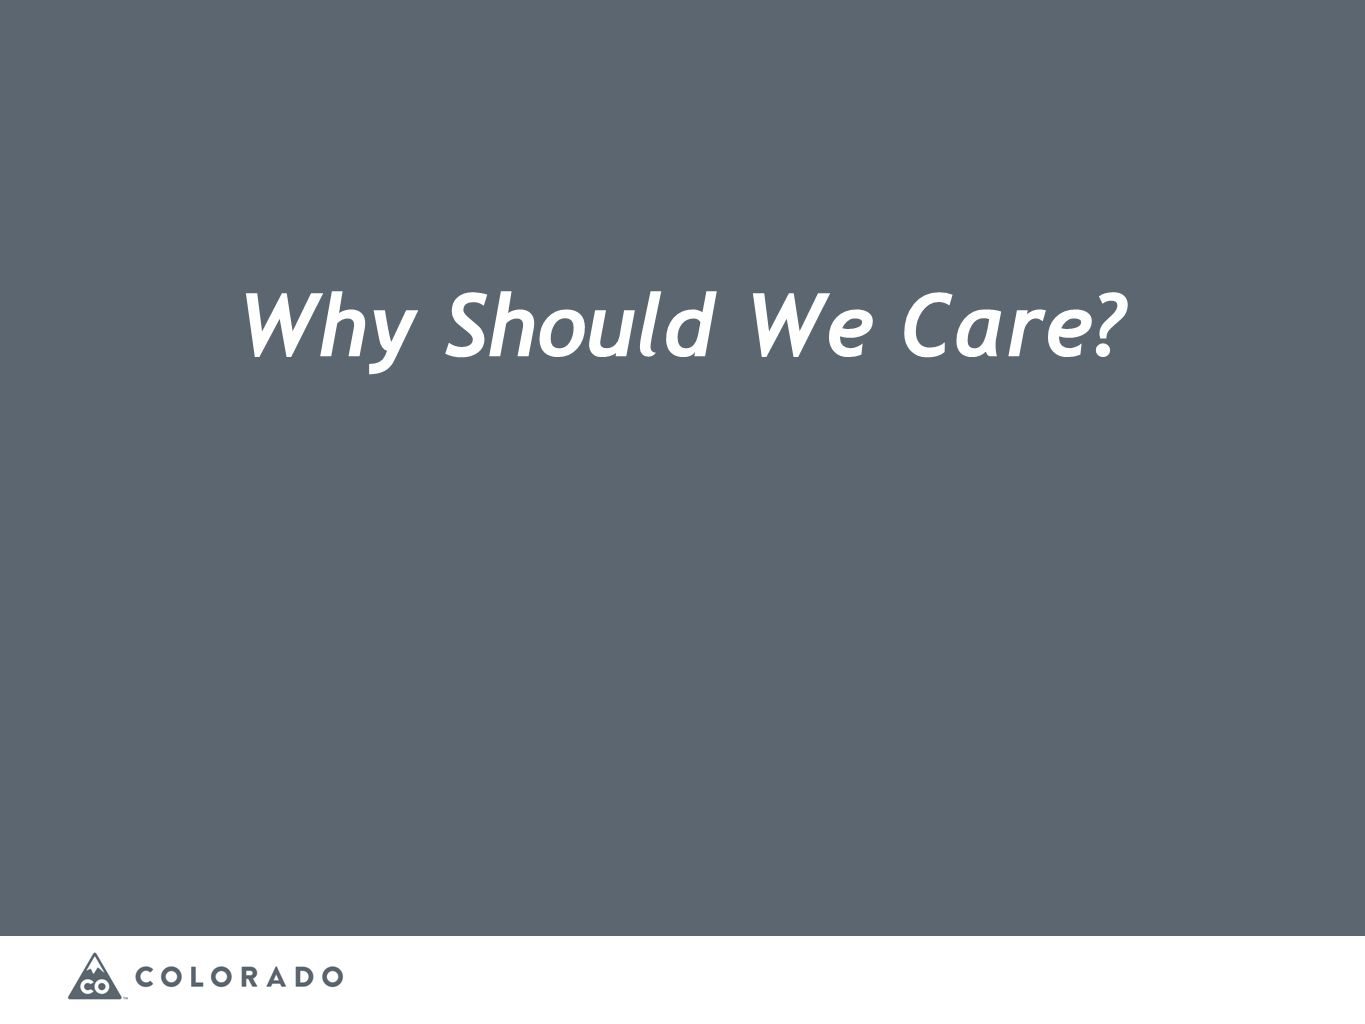 Why Should We Care